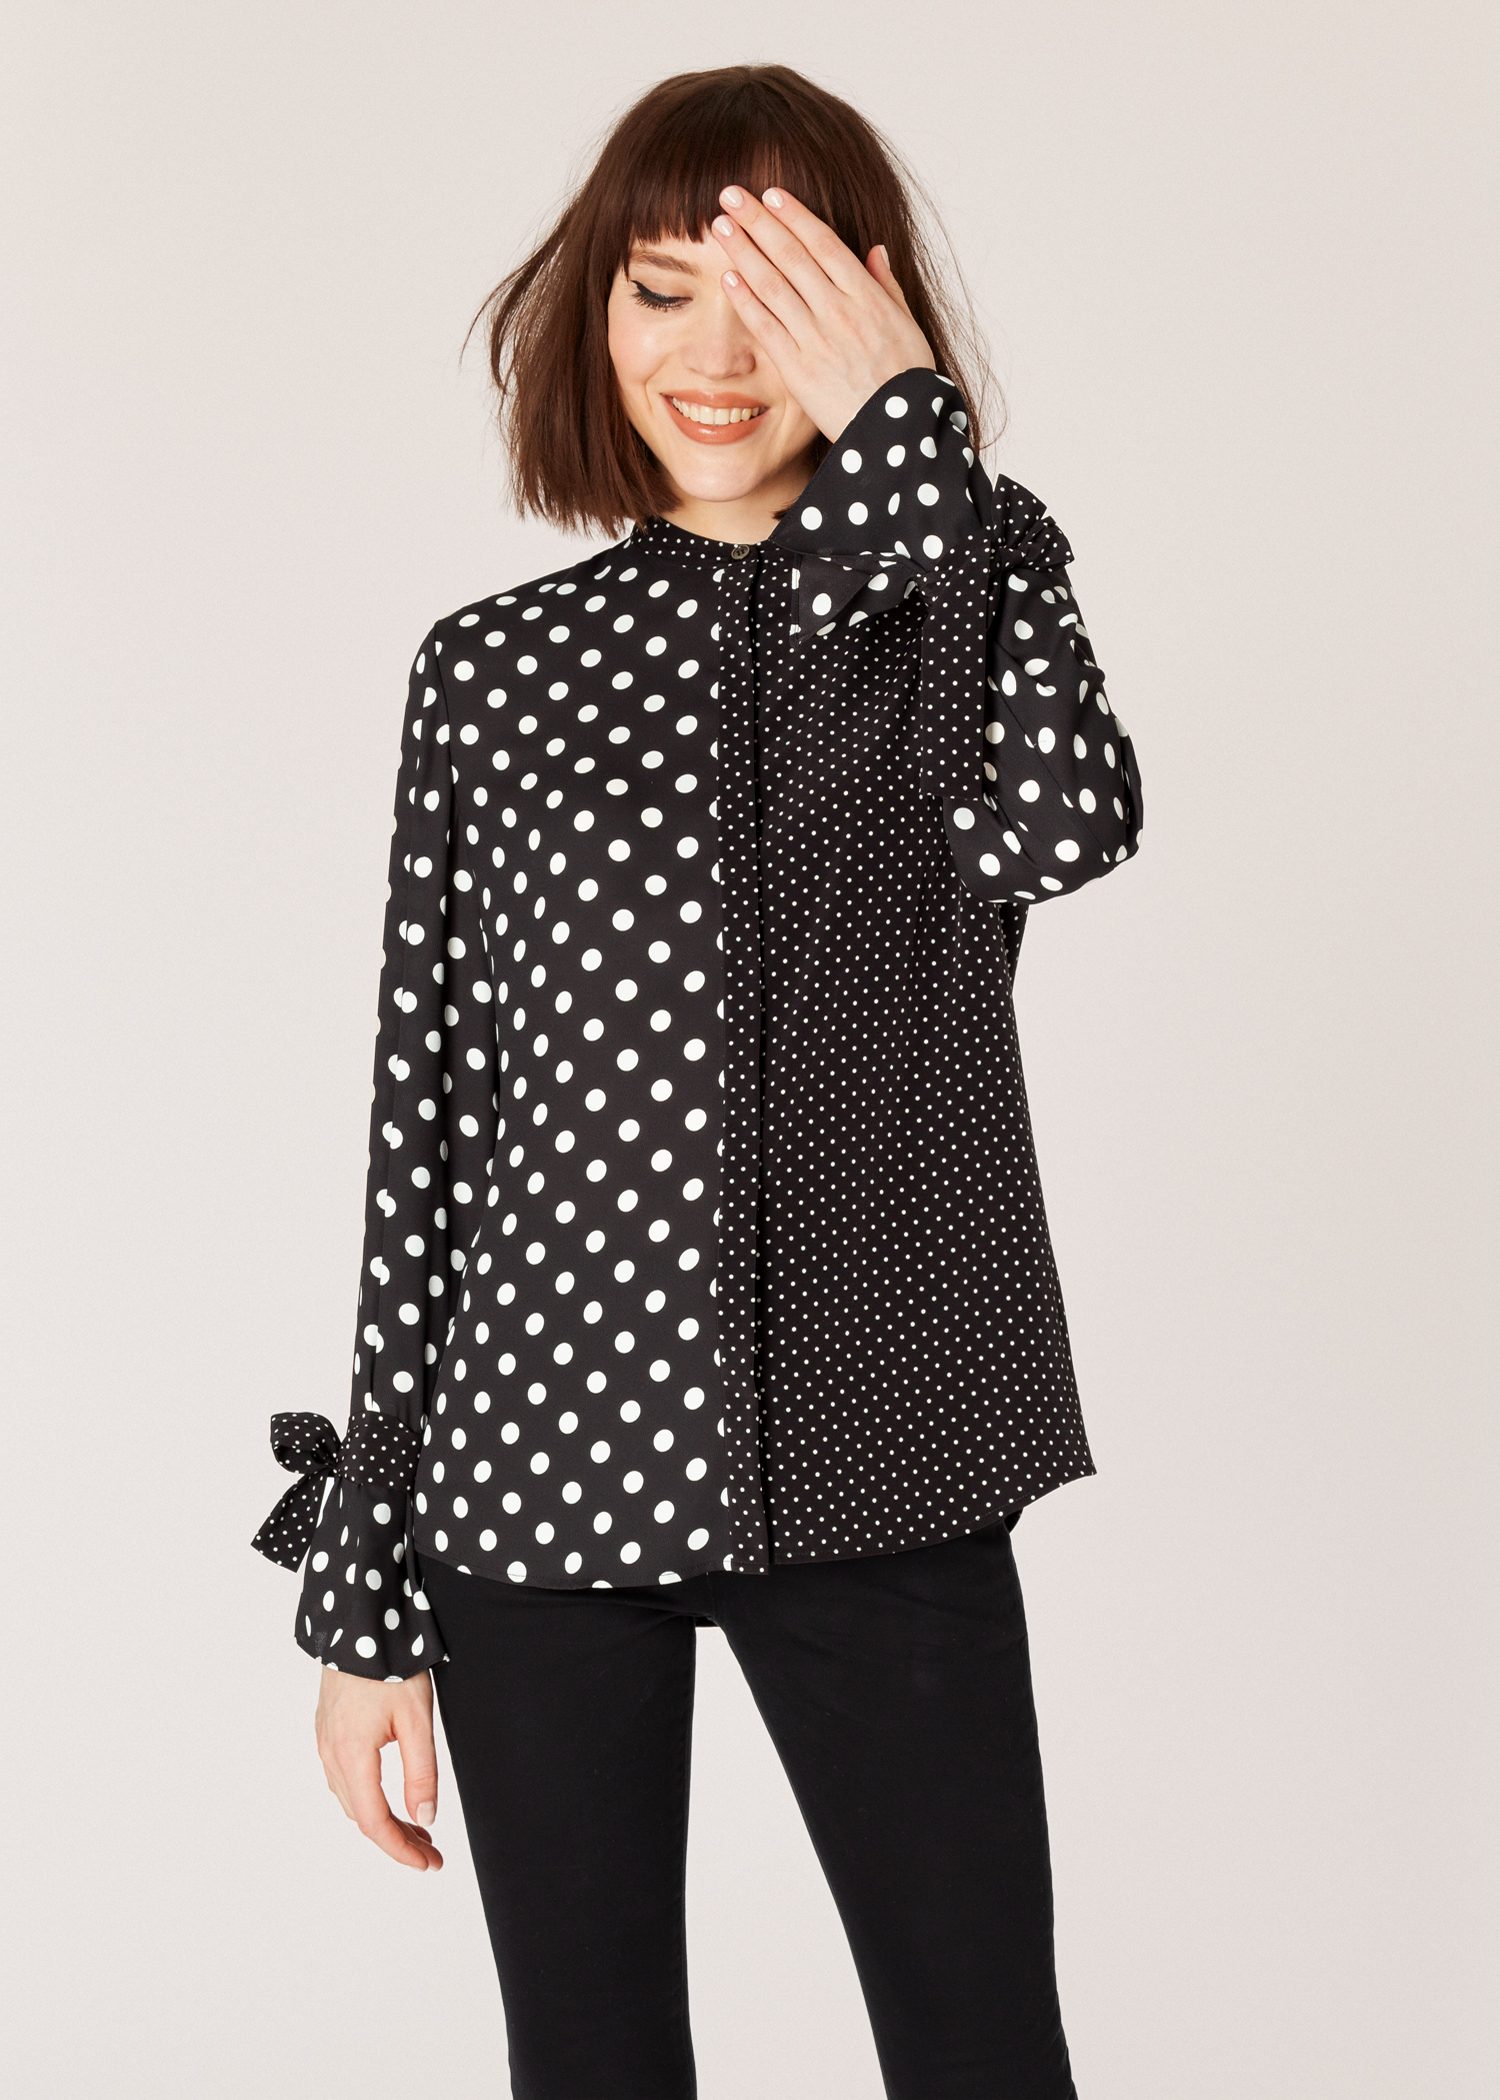 49af7198417ee4 Model front close up - Women's Black And White Polka Dot Shirt With Tie  Cuffs Paul